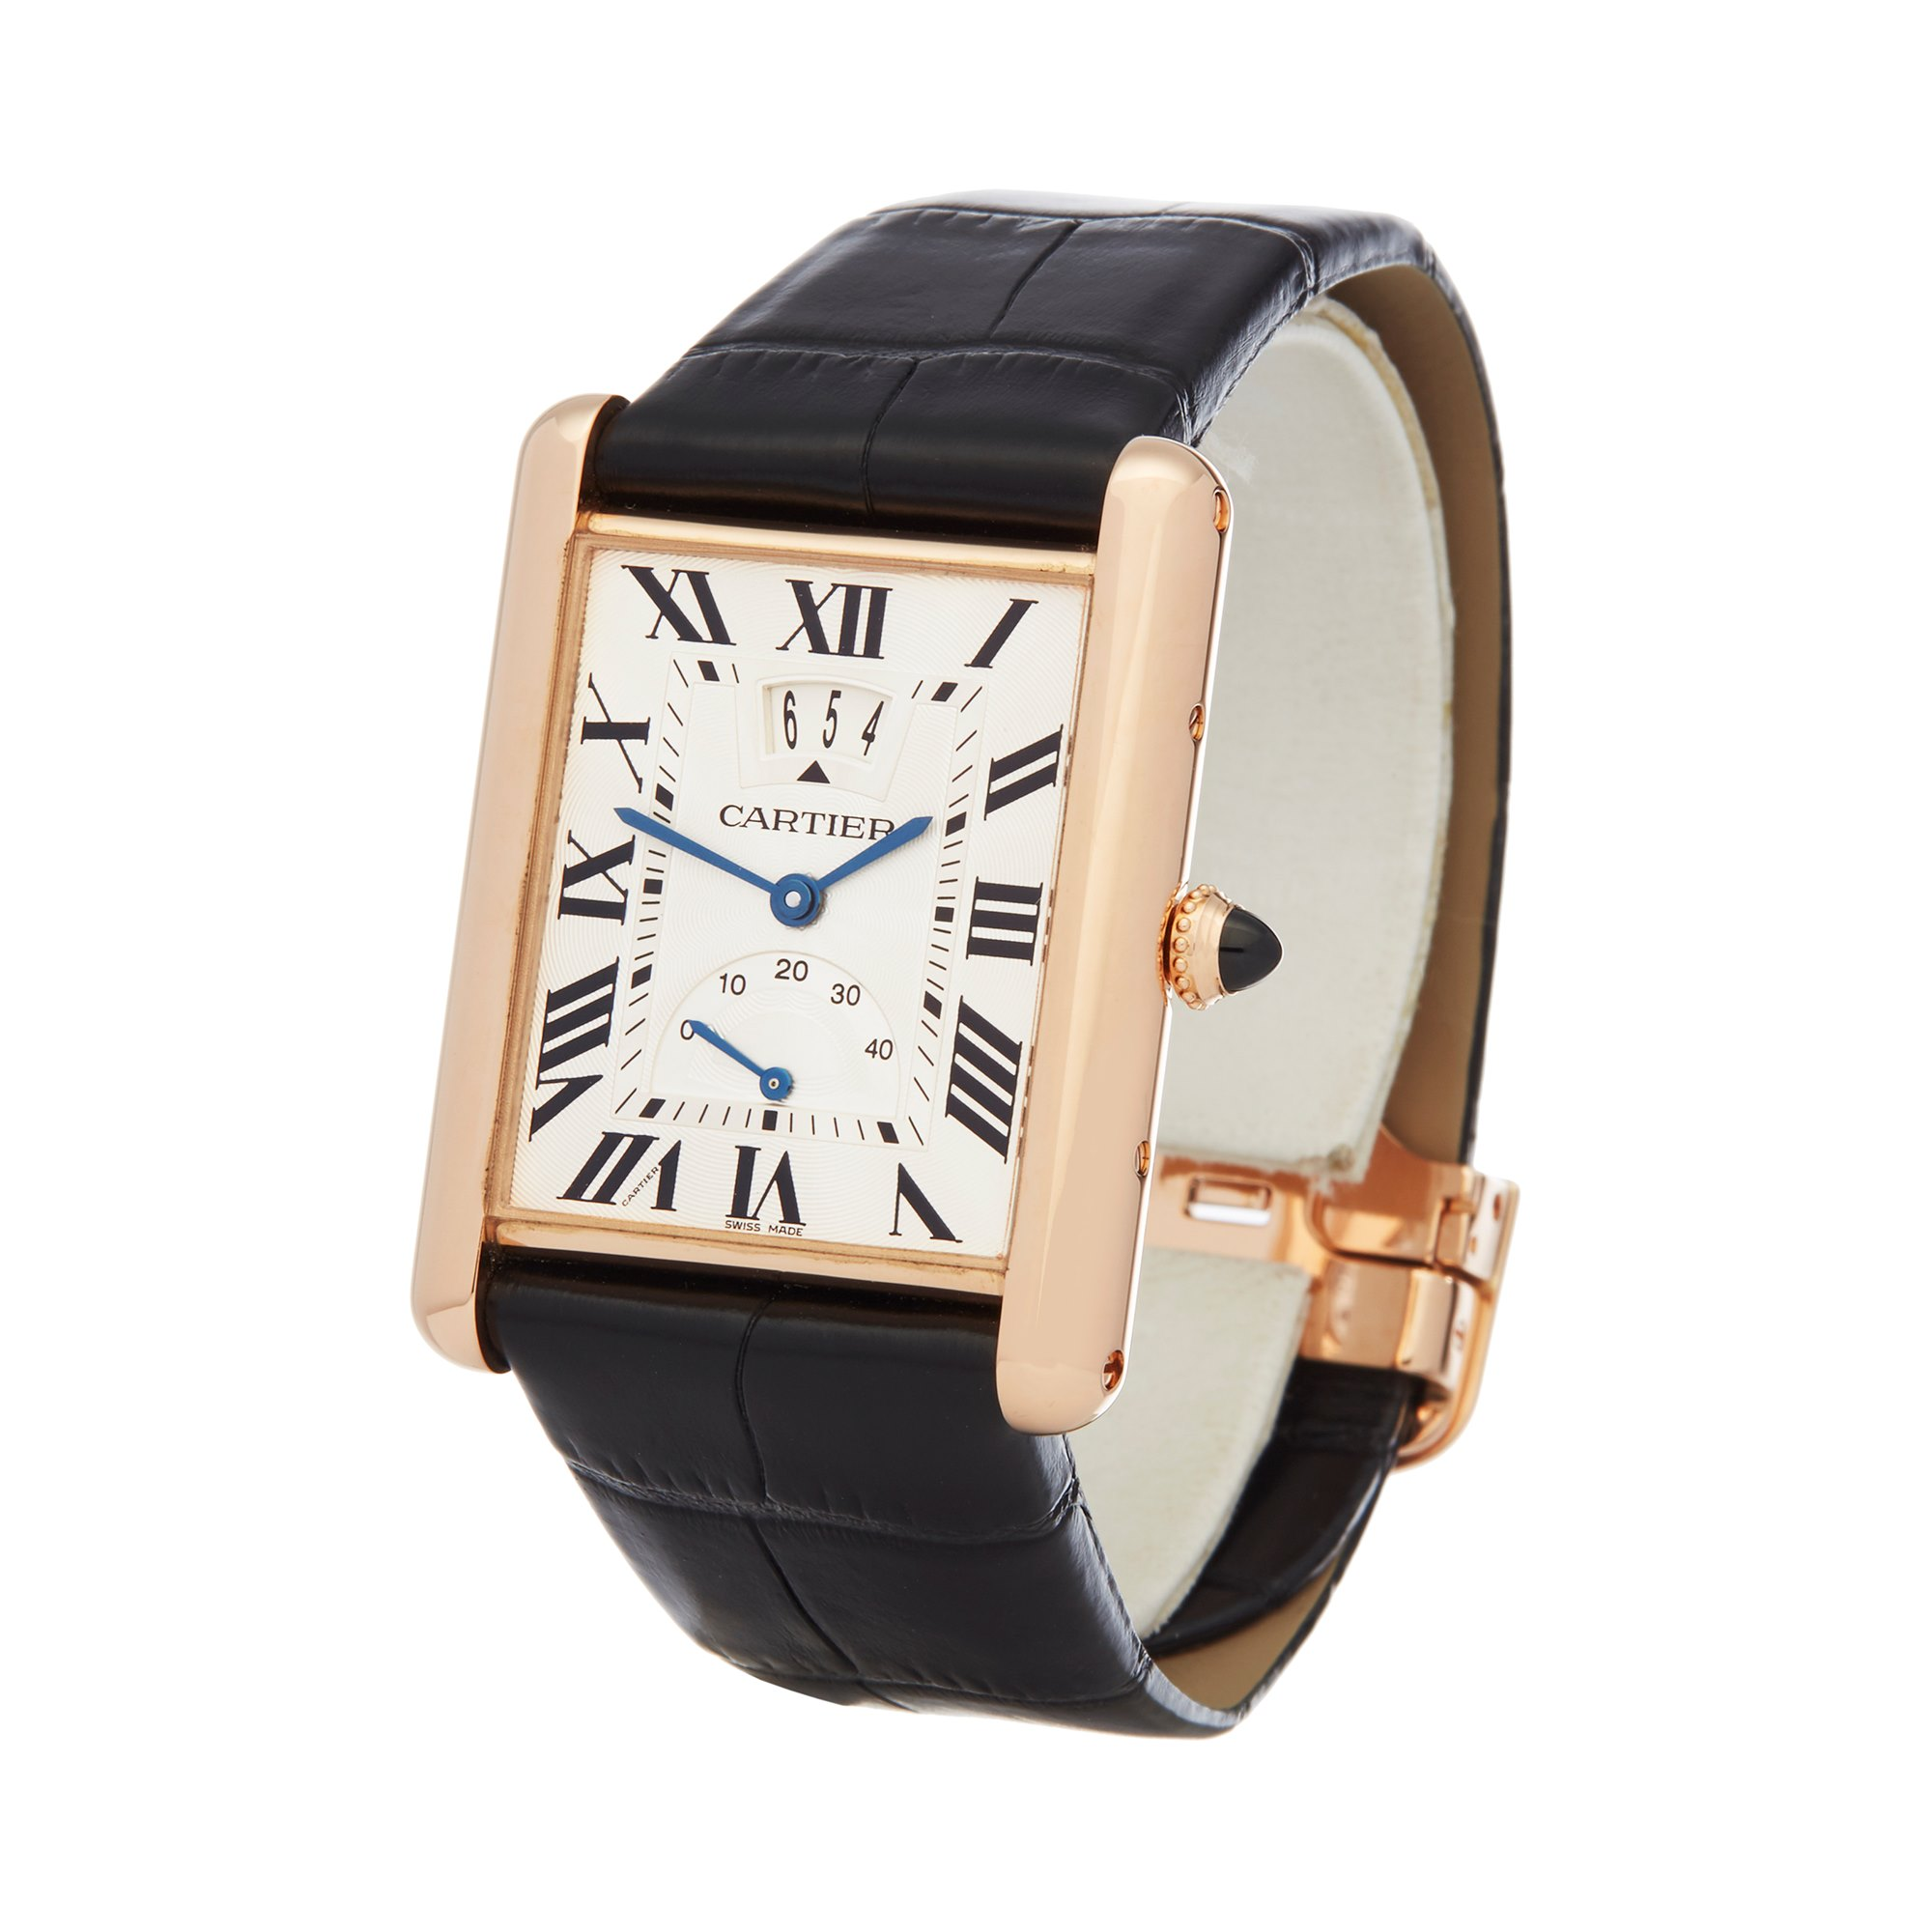 Cartier Tank Louis LC Big Date 18K Rose Gold W1560003 or 3185